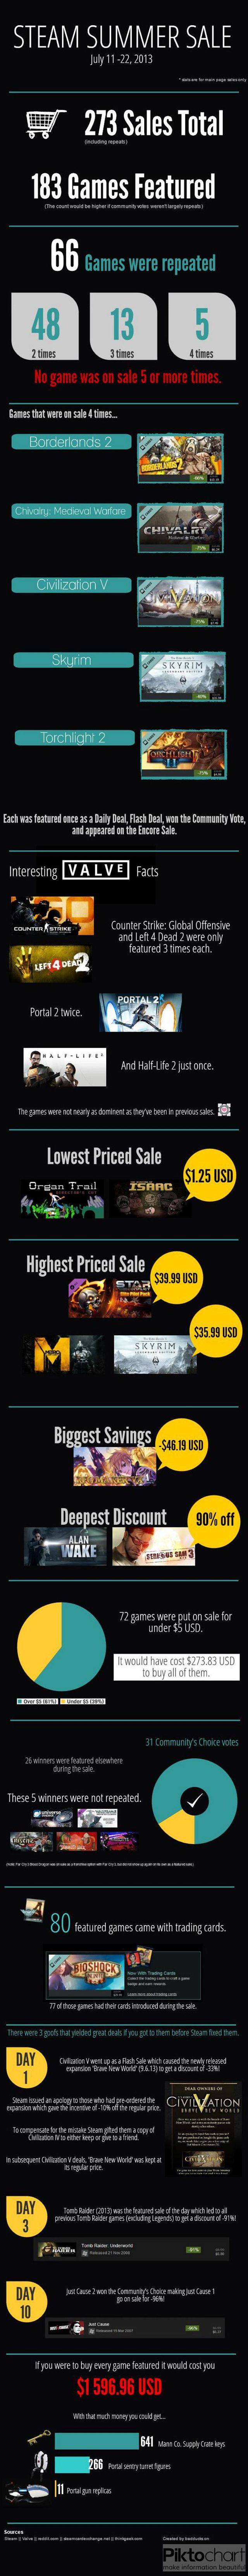 The Fascinating Numbers Behind This Year's (2013) Steam Summer Sale